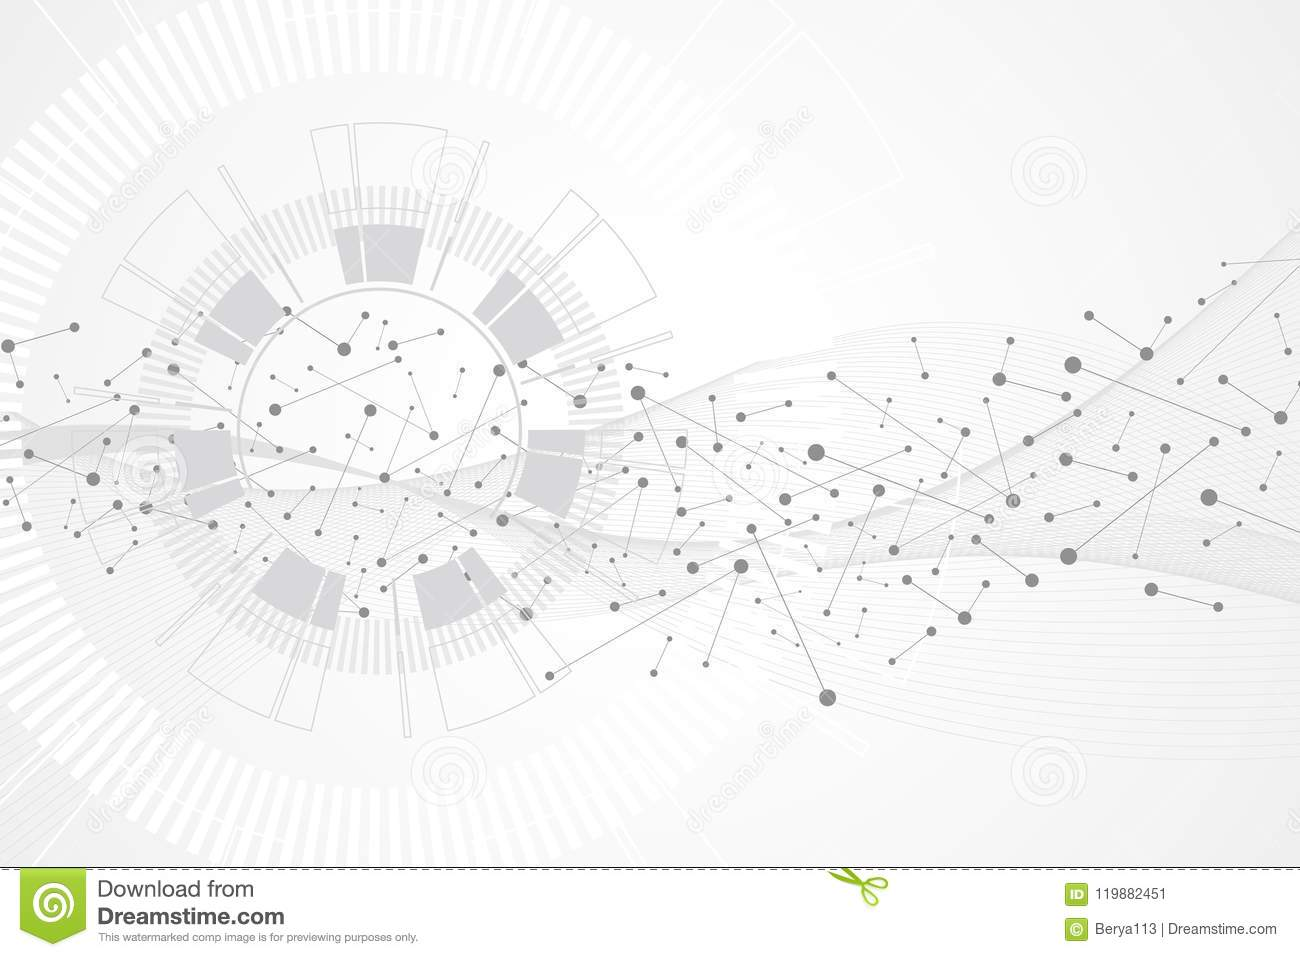 Big Data Visualization. Artificial Intelligence And